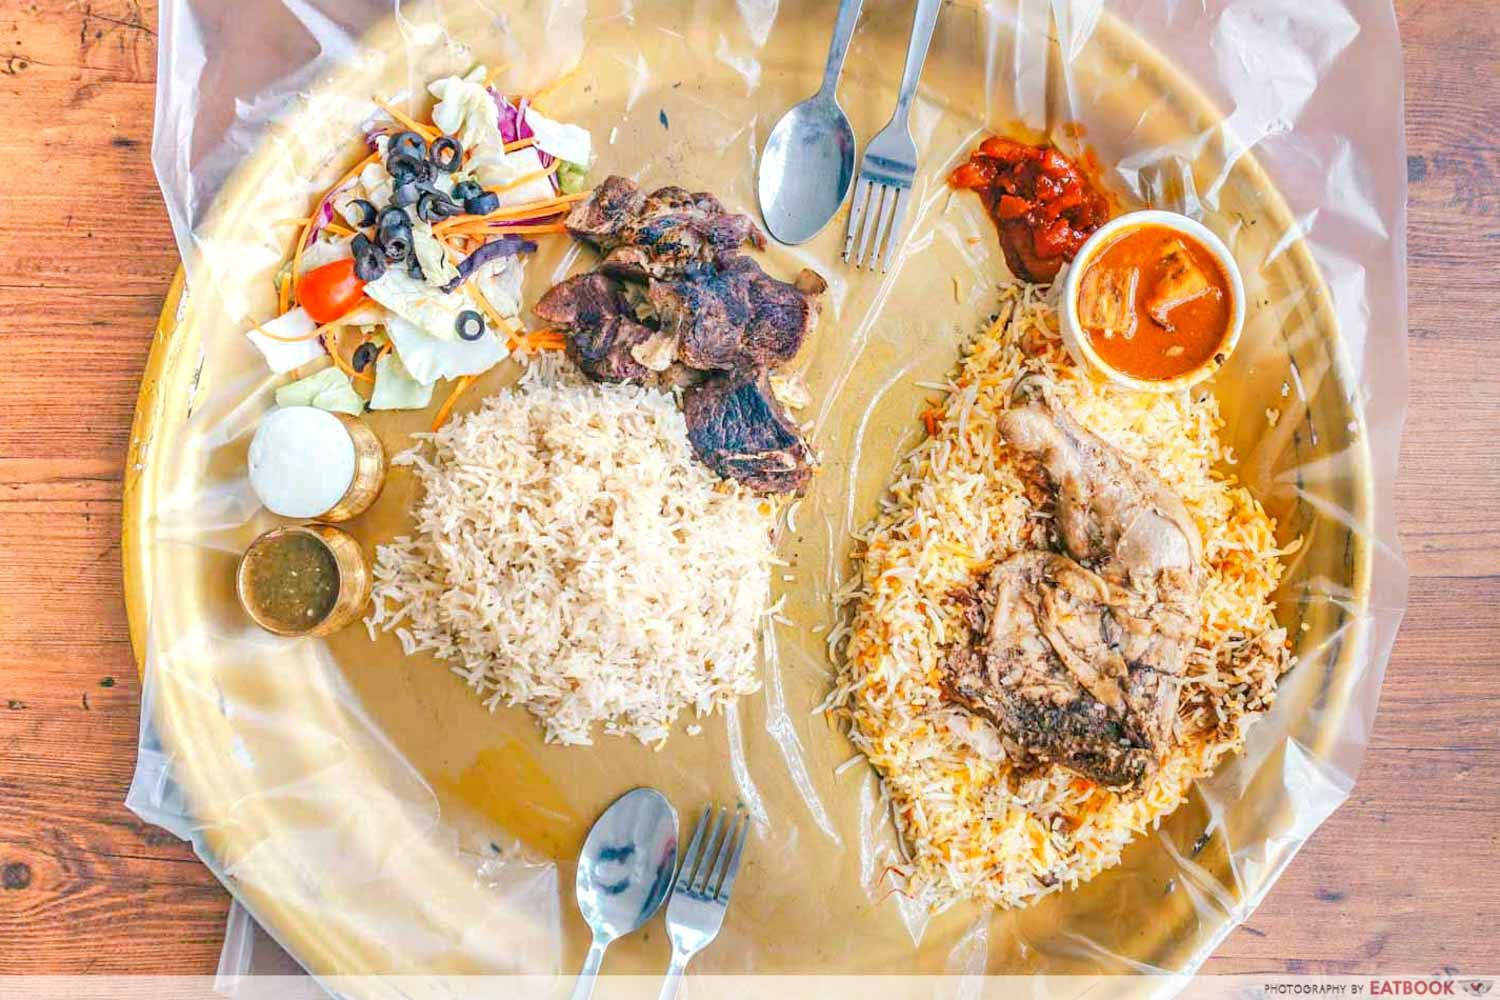 Cafe Mariam Review Cheap And Good Nasi Briyani By A Third Generation Chef Eatbook Sg New Singapore Restaurant And Street Food Id In 2020 Halal Recipes Food Foodie